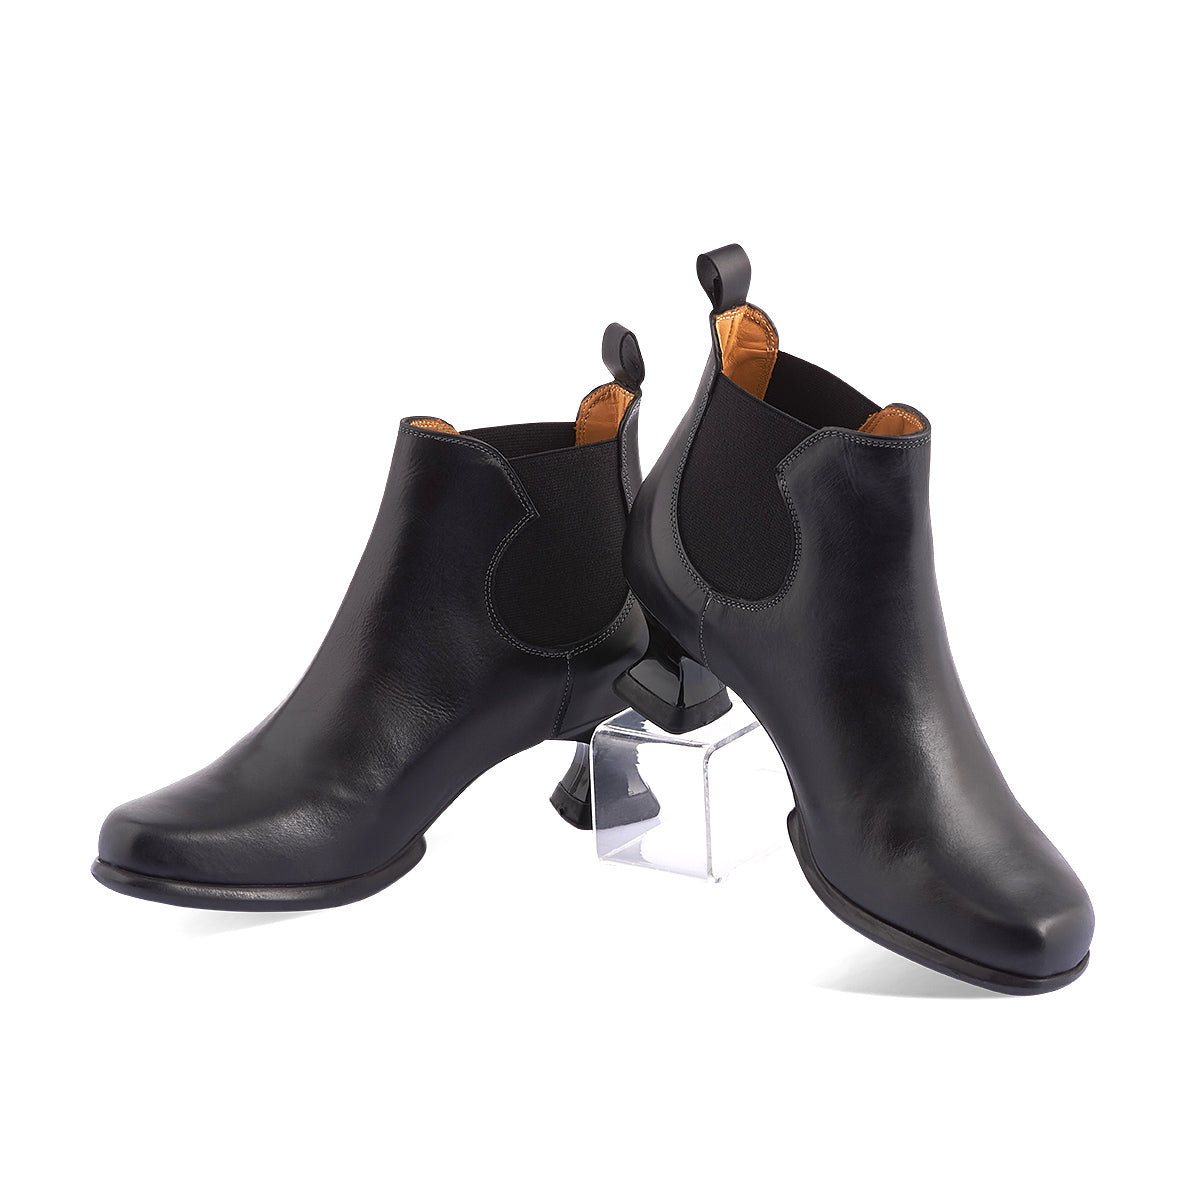 A true Fluevog classic, Danke is John Fluevog's homage to modern Berliner art and design. This functional Chelsea boot features a soft, supple leather upper, sweeping lines and a gorgeous angular toe. The original Wearevers heel and comfy rubber sole are among the most iconic of all Fluevog designs.